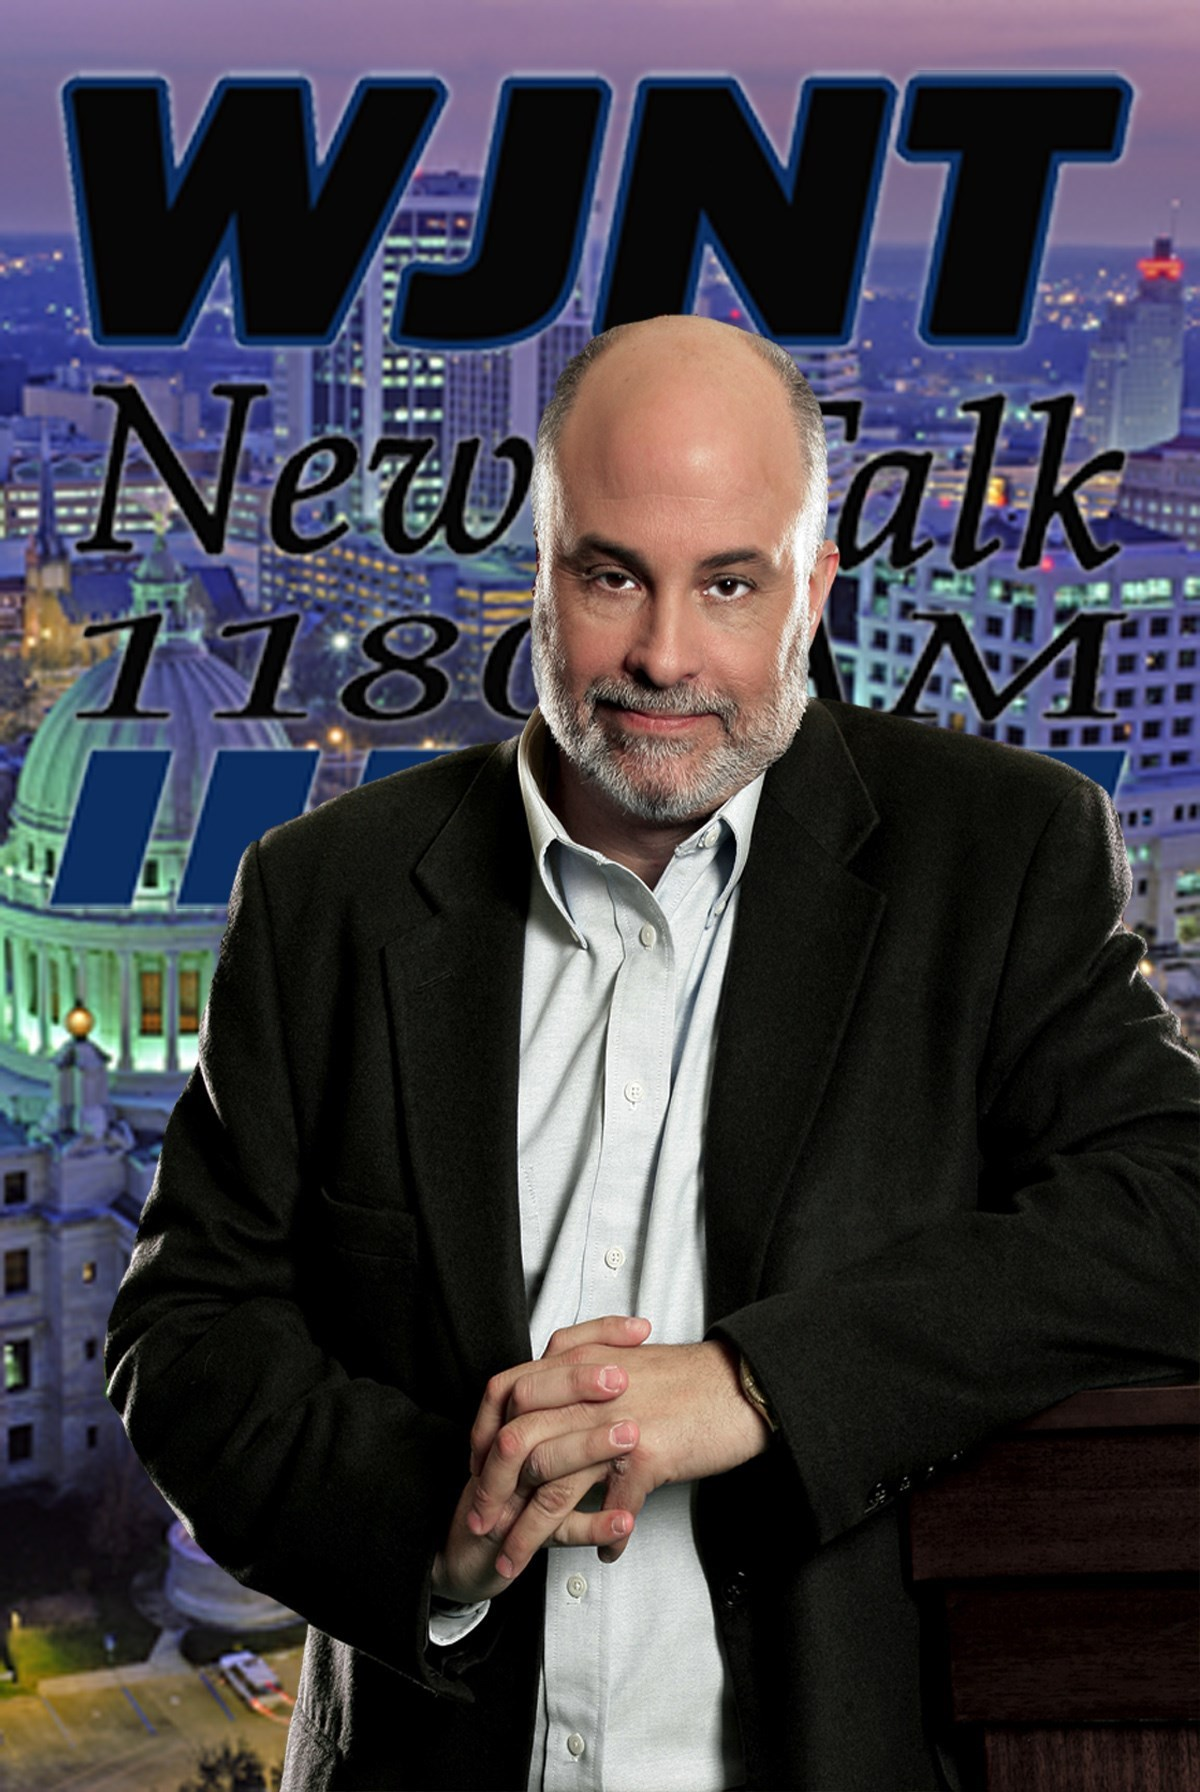 Mark Levin   Known people - famous people news and biographies Mark Levin